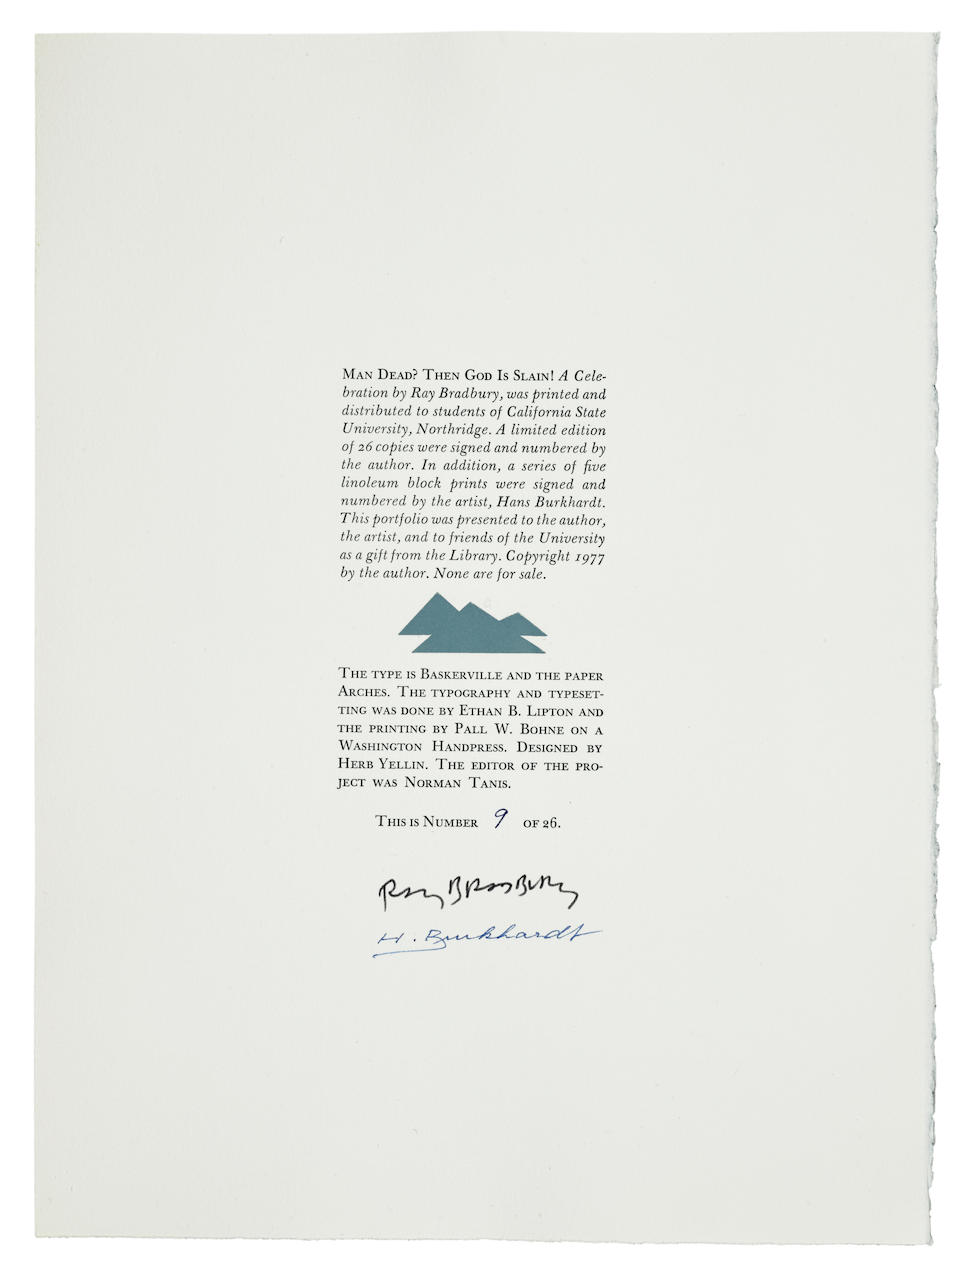 BRADBURY, RAY. 1920-2012. A  large collection of limited editions, approximately 72 volumes, including: